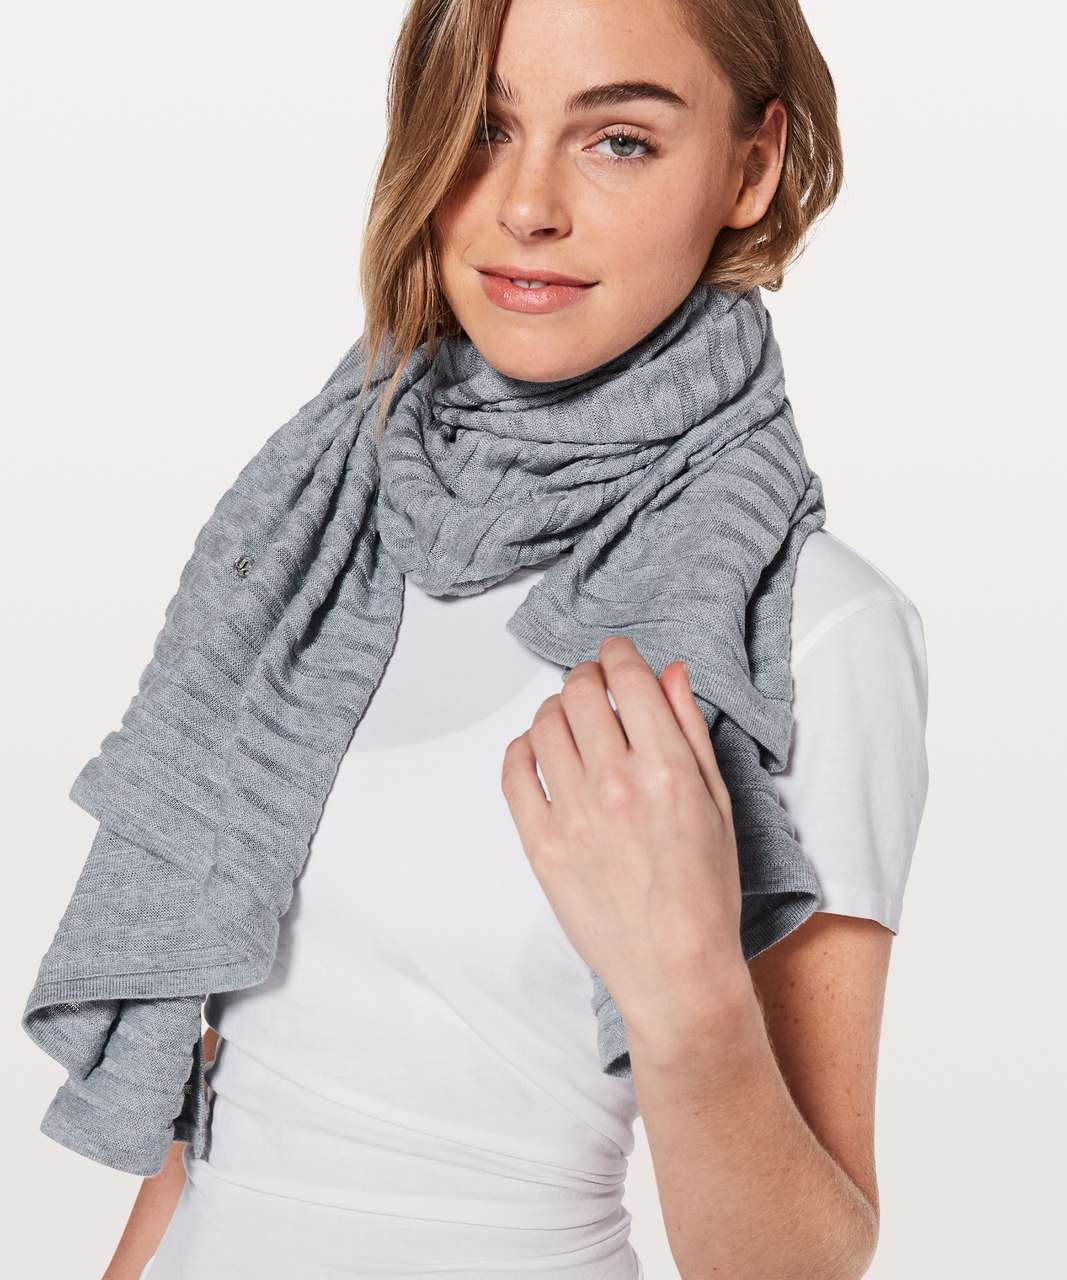 Lululemon Rejuvenate Wrap *Transformational (Stripe) - Heathered Space Dyed Nimbus